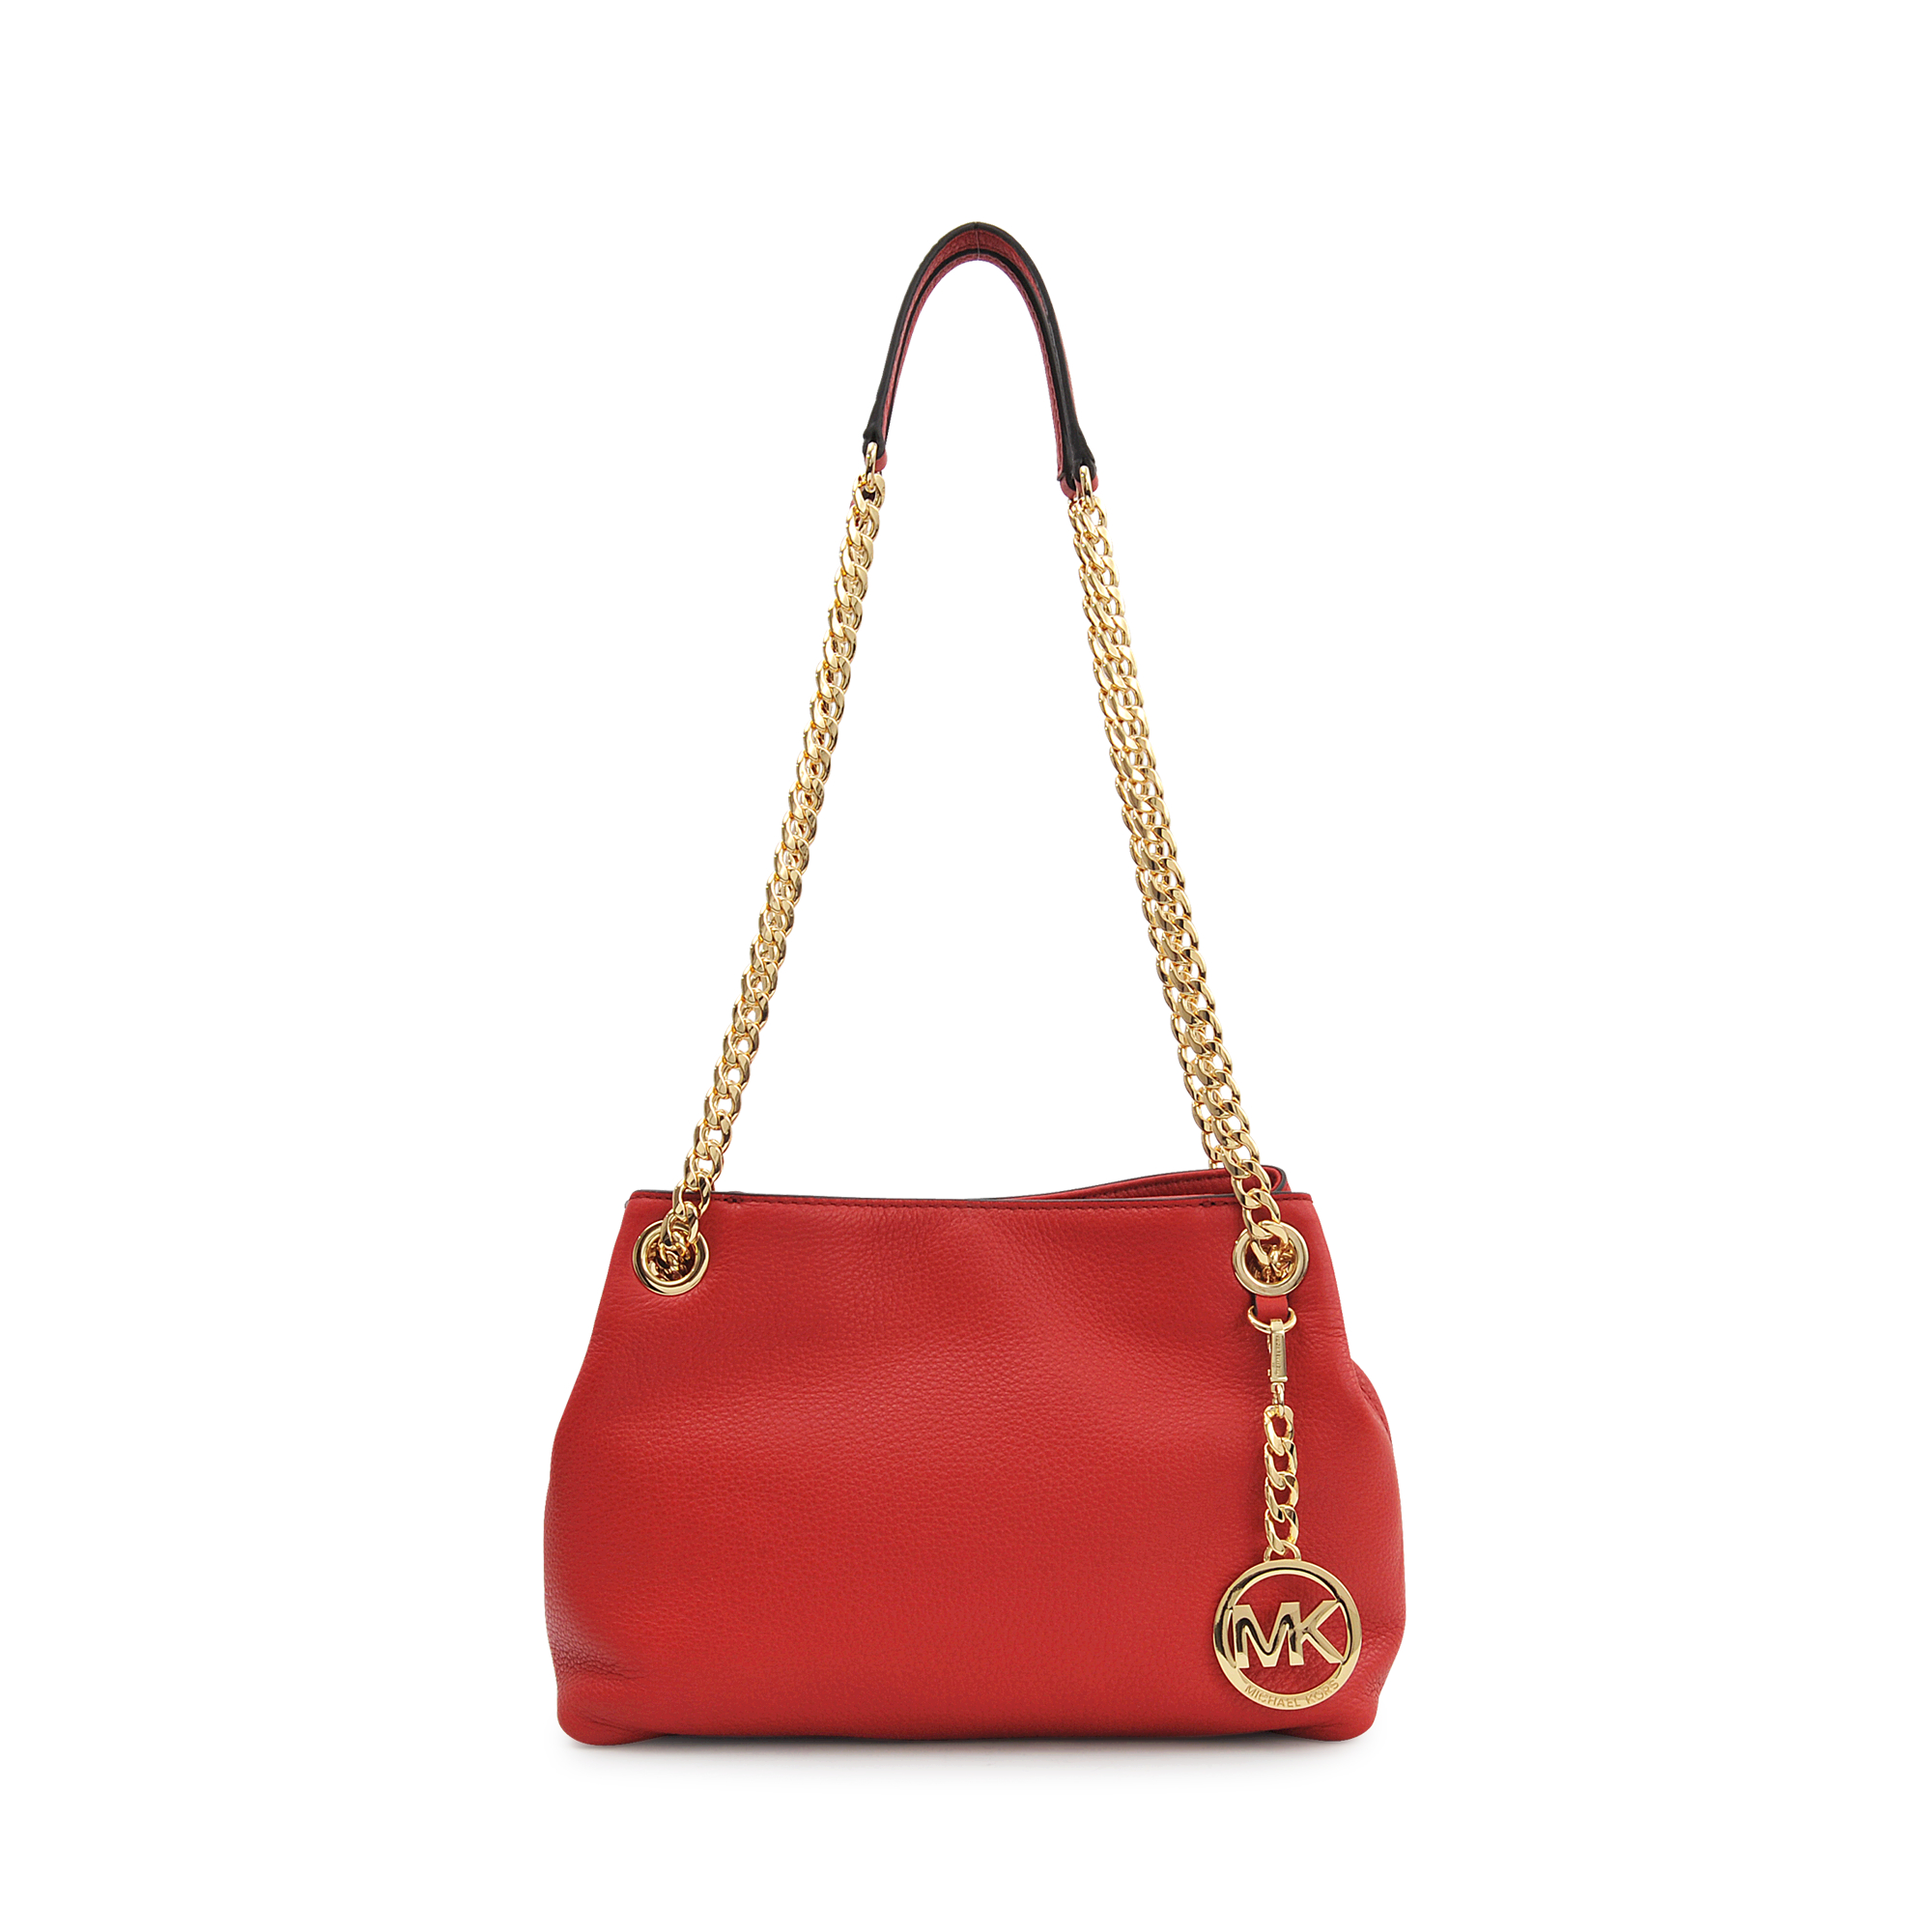 0b6ad63a77b Michael Kors Jet Set Chain Md Messenger Bag in Red - Lyst